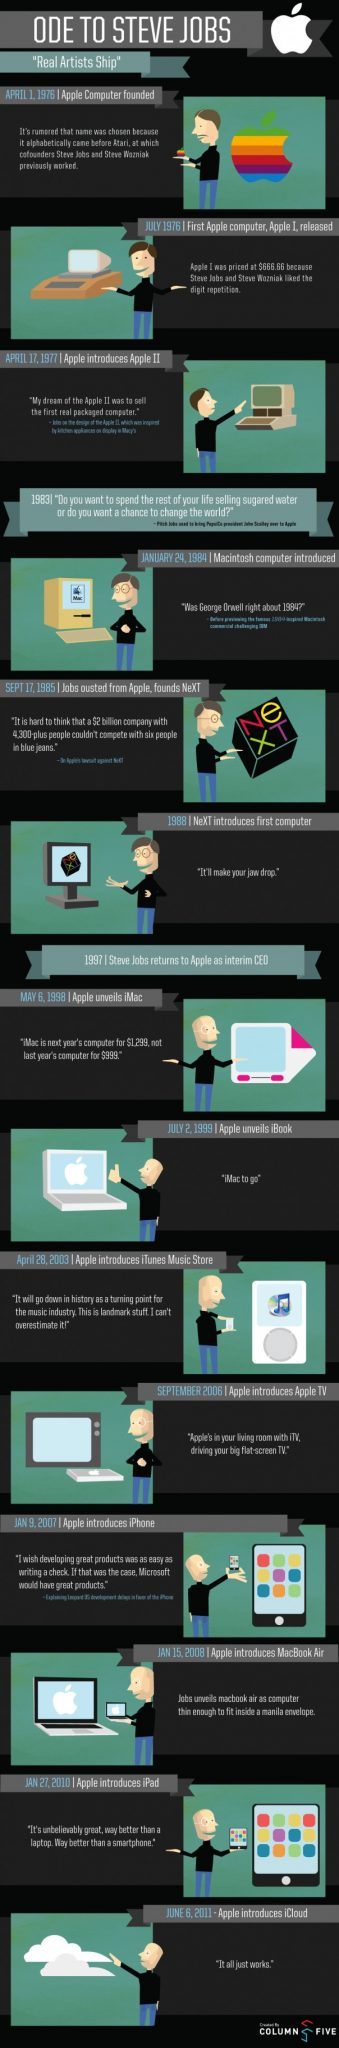 Ode to Steve Jobs (infographic)